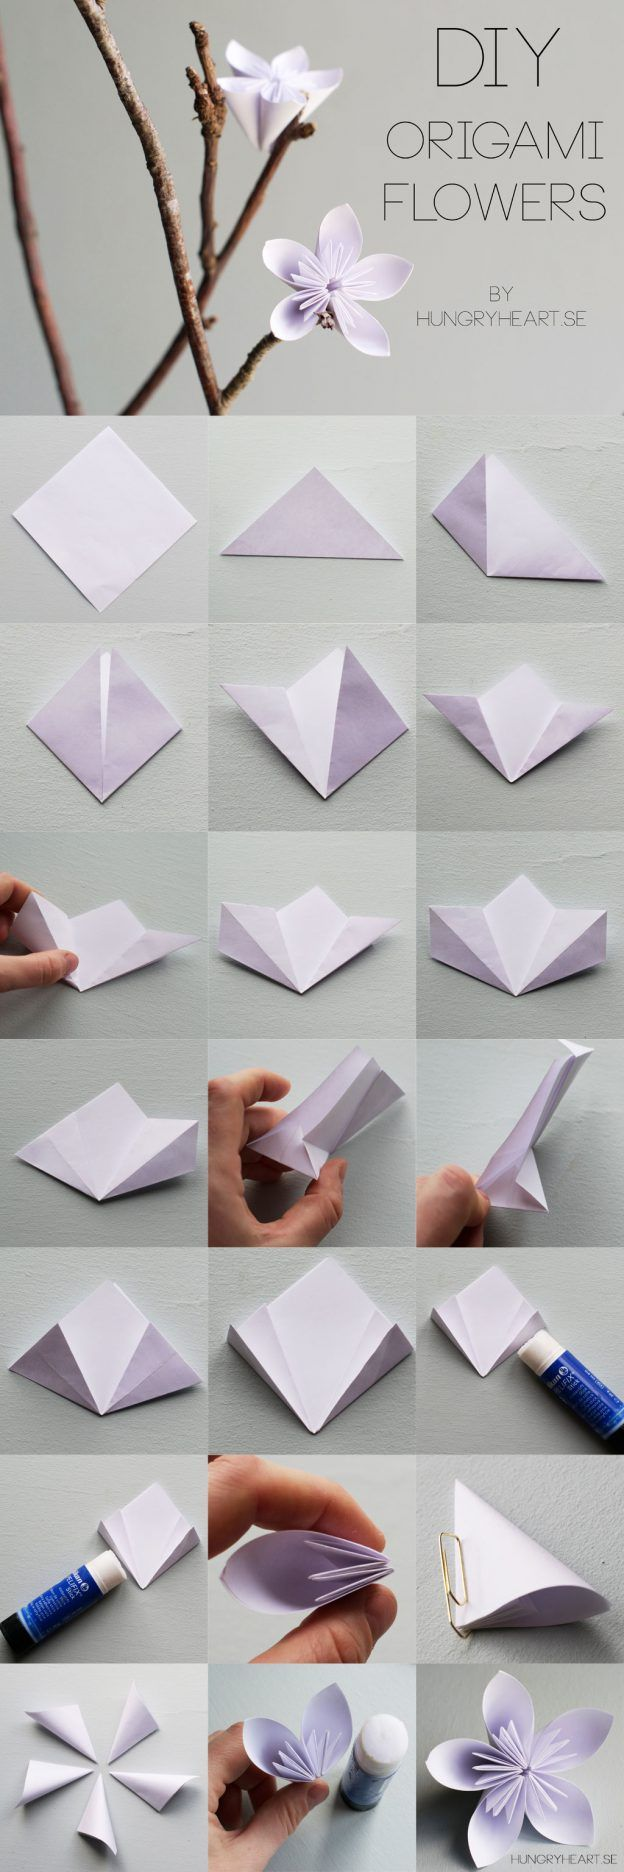 Diy origami flower step by step tutorial for Paper decorations diy